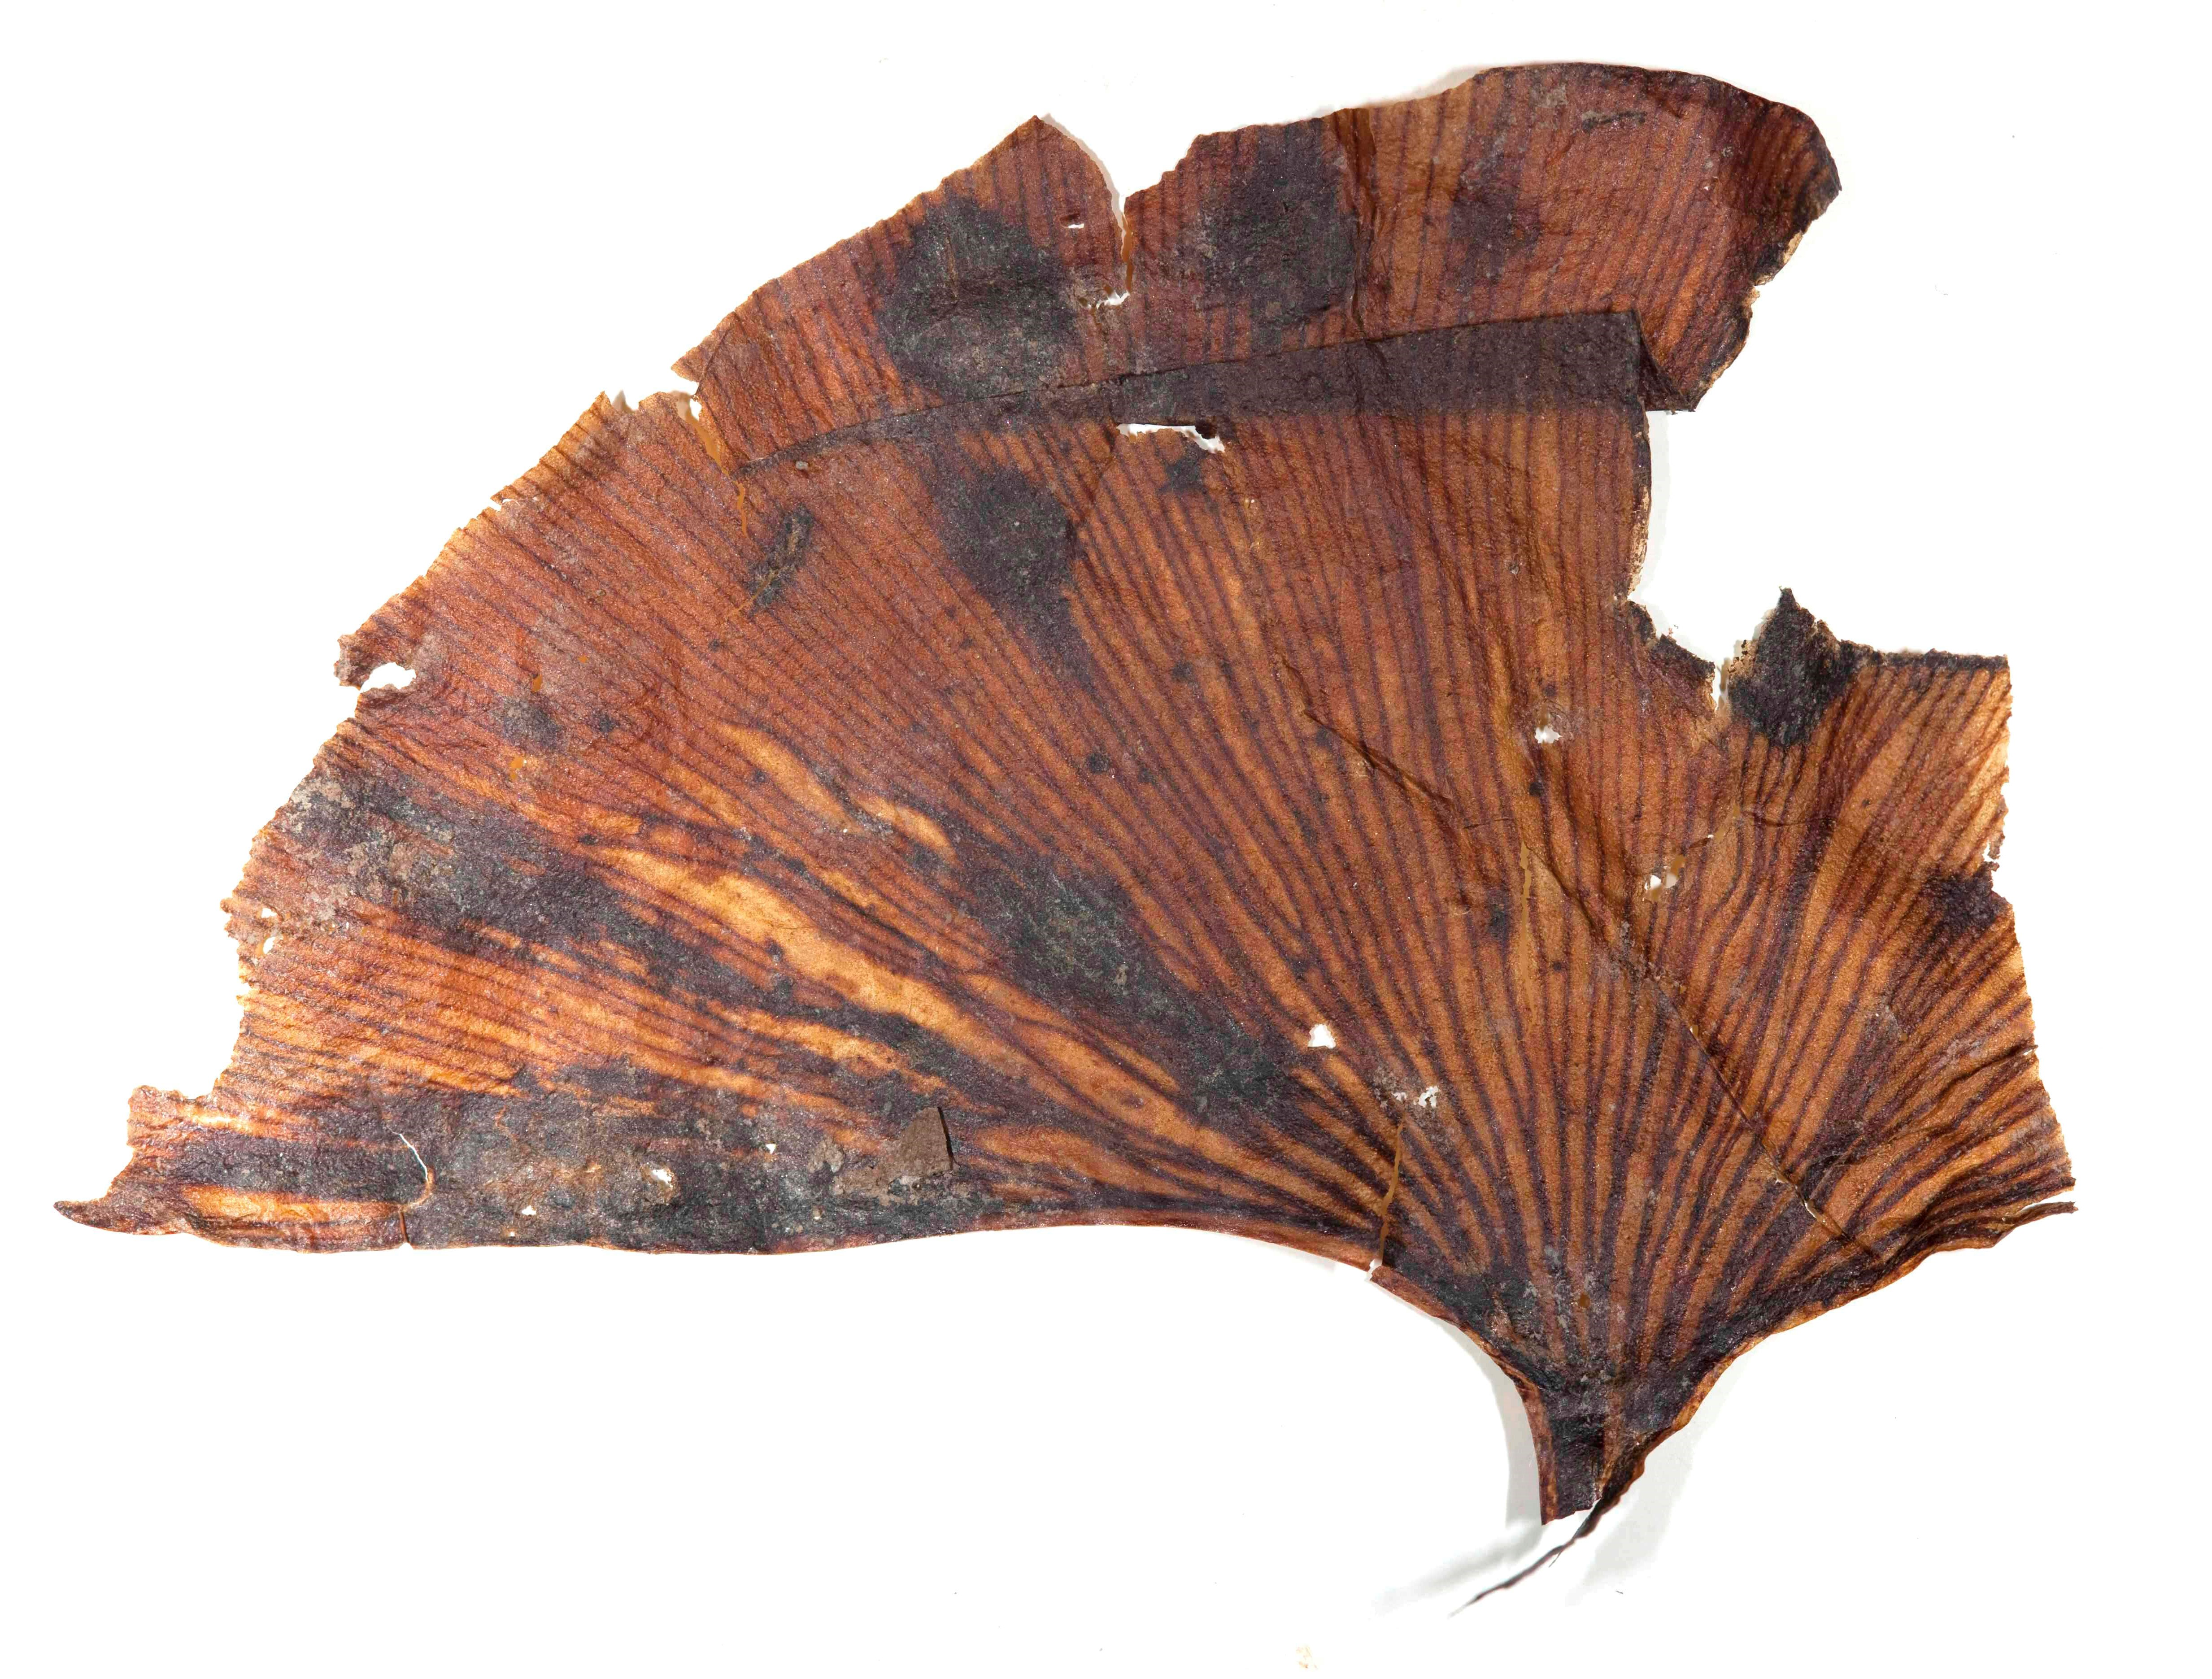 A 56.1 million year old fossil Ginkgo leaf with an almost identical shape to leaves from modern trees. (Scott Wing, Smithsonian)